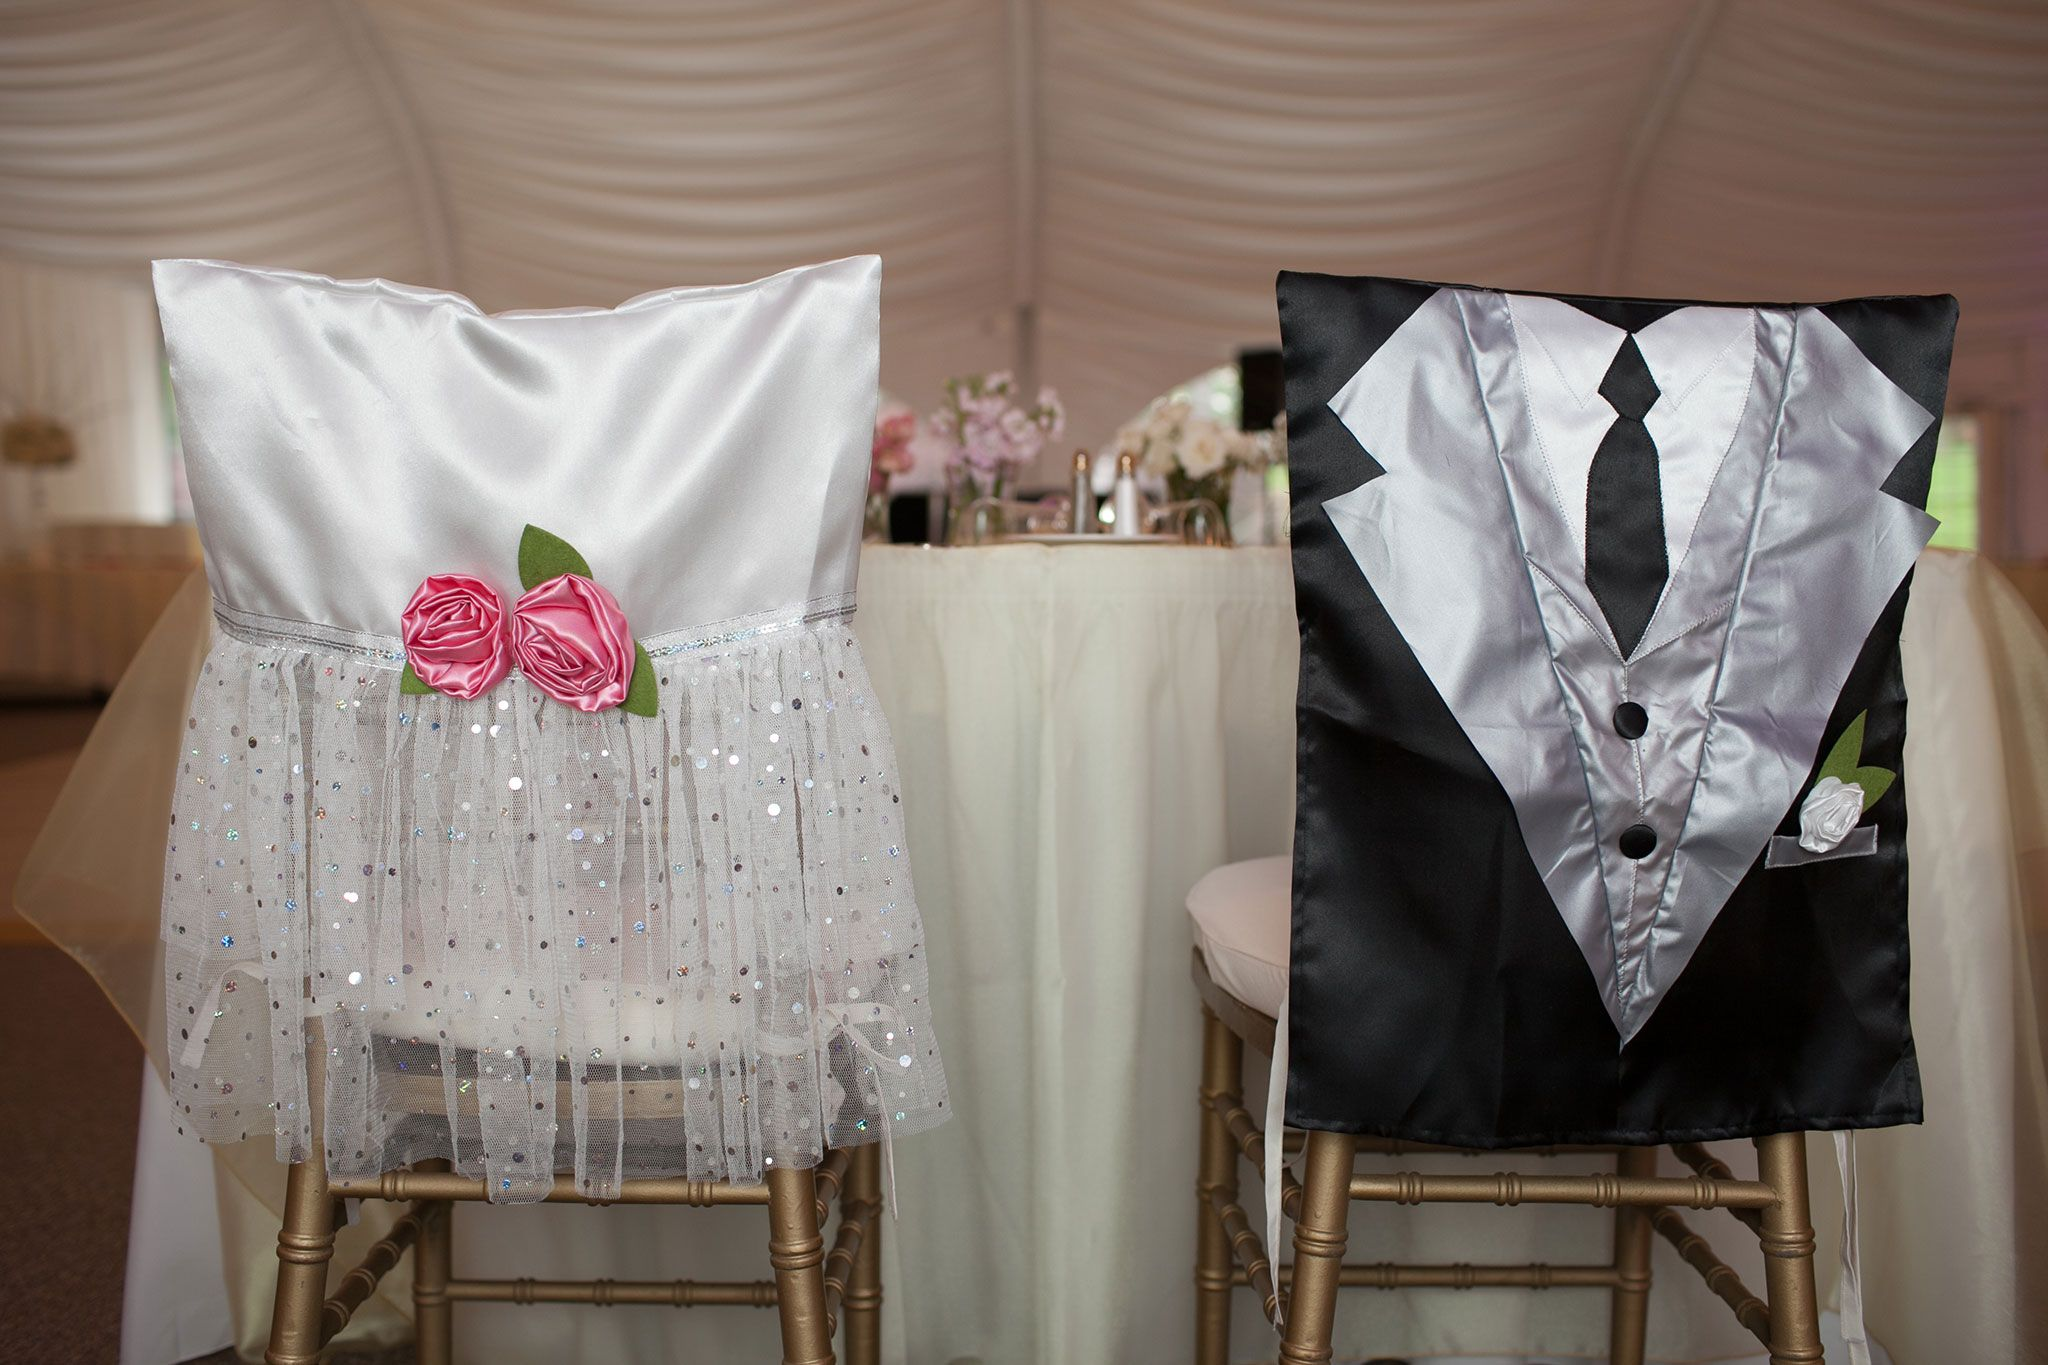 How adorable are these chair covers for the sweetheart table